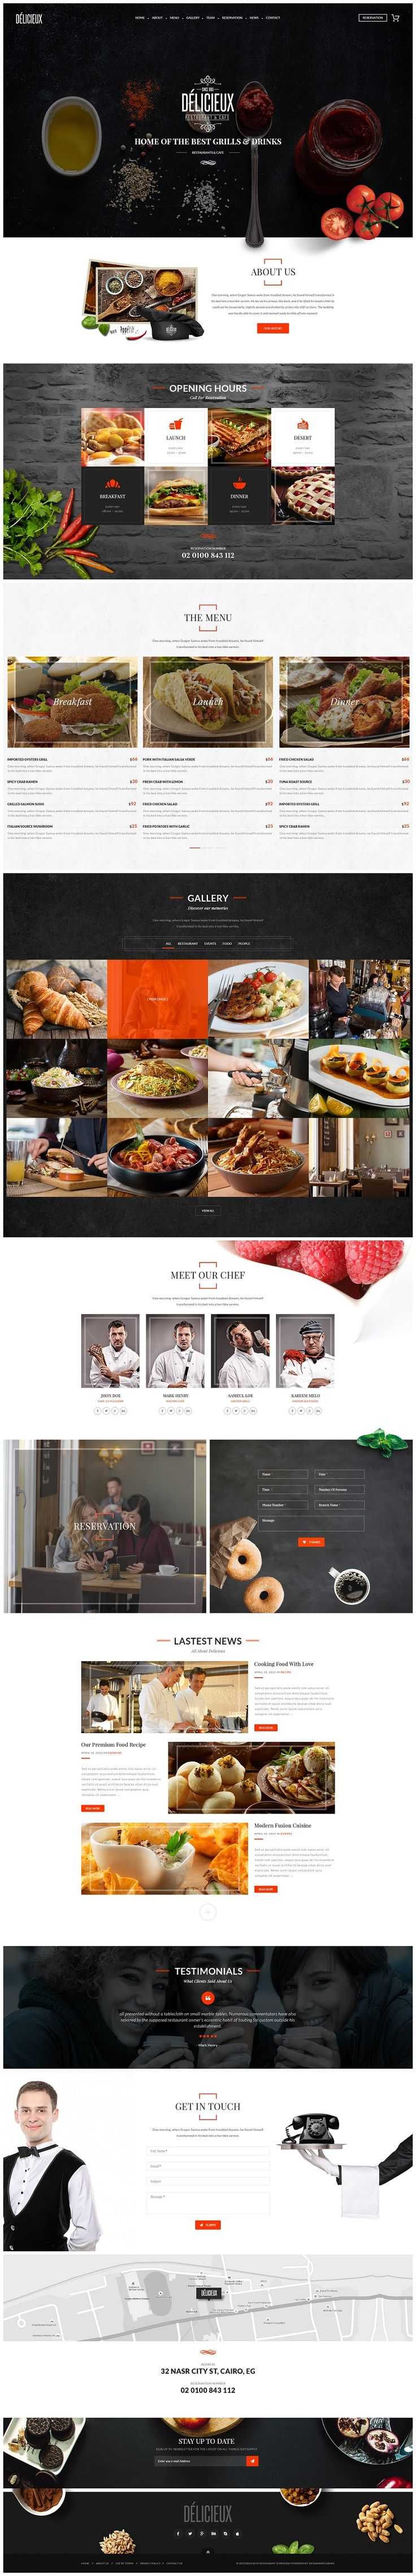 Best Business WordPress Themes #2015